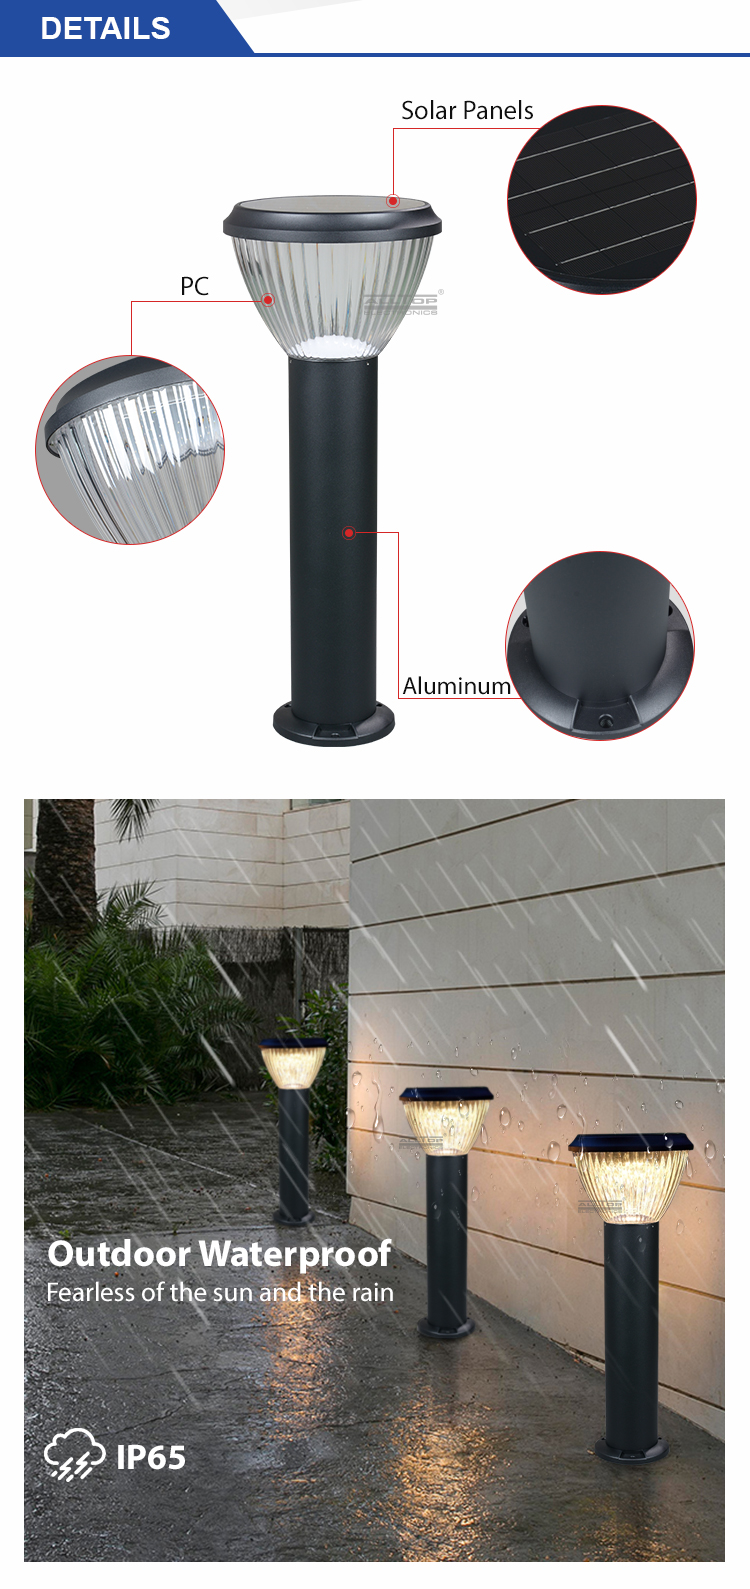 ALLTOP solar led lamp post light-13